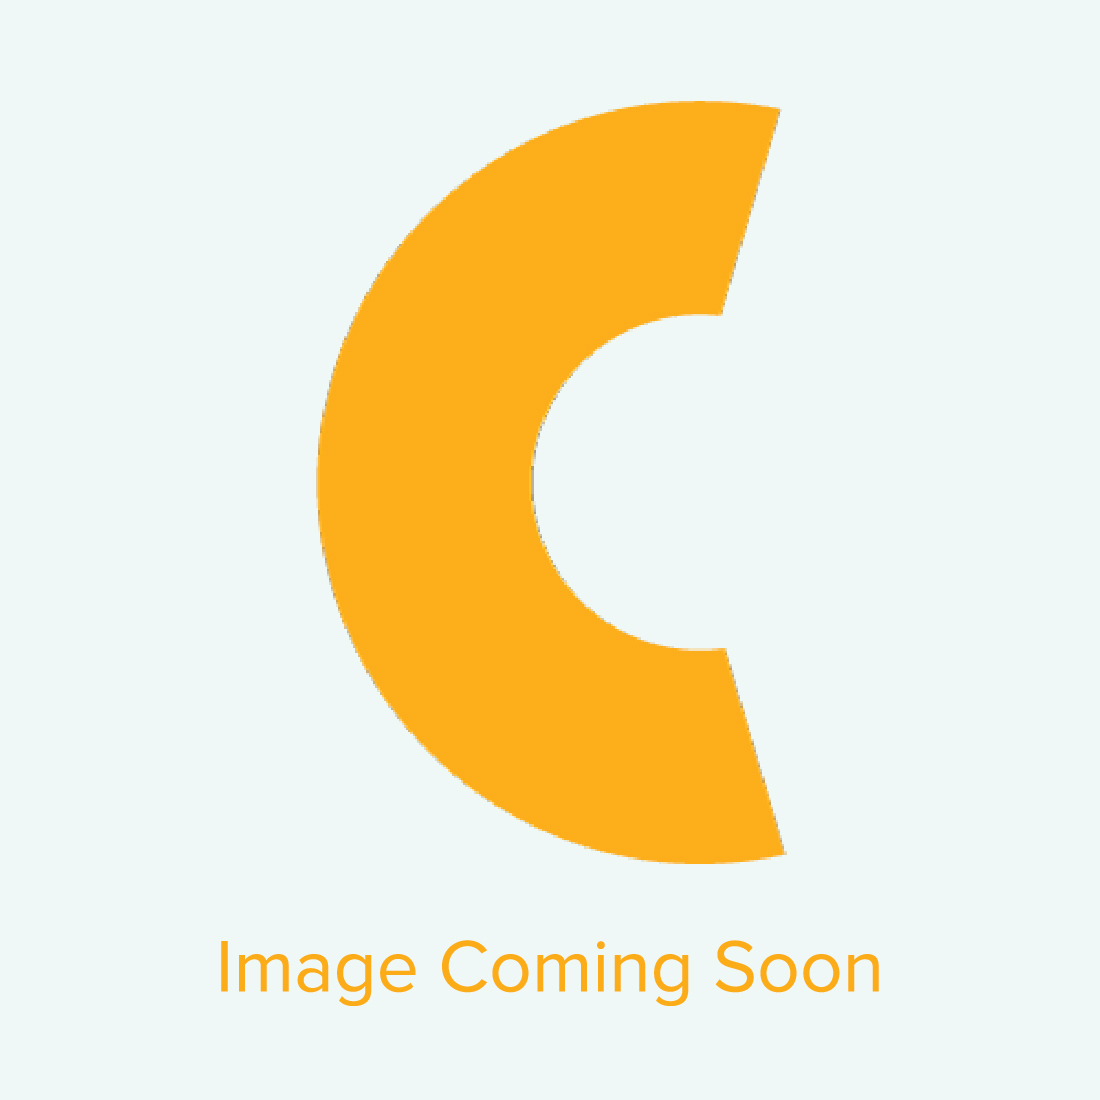 HP 64-inch Latex 335 Printer